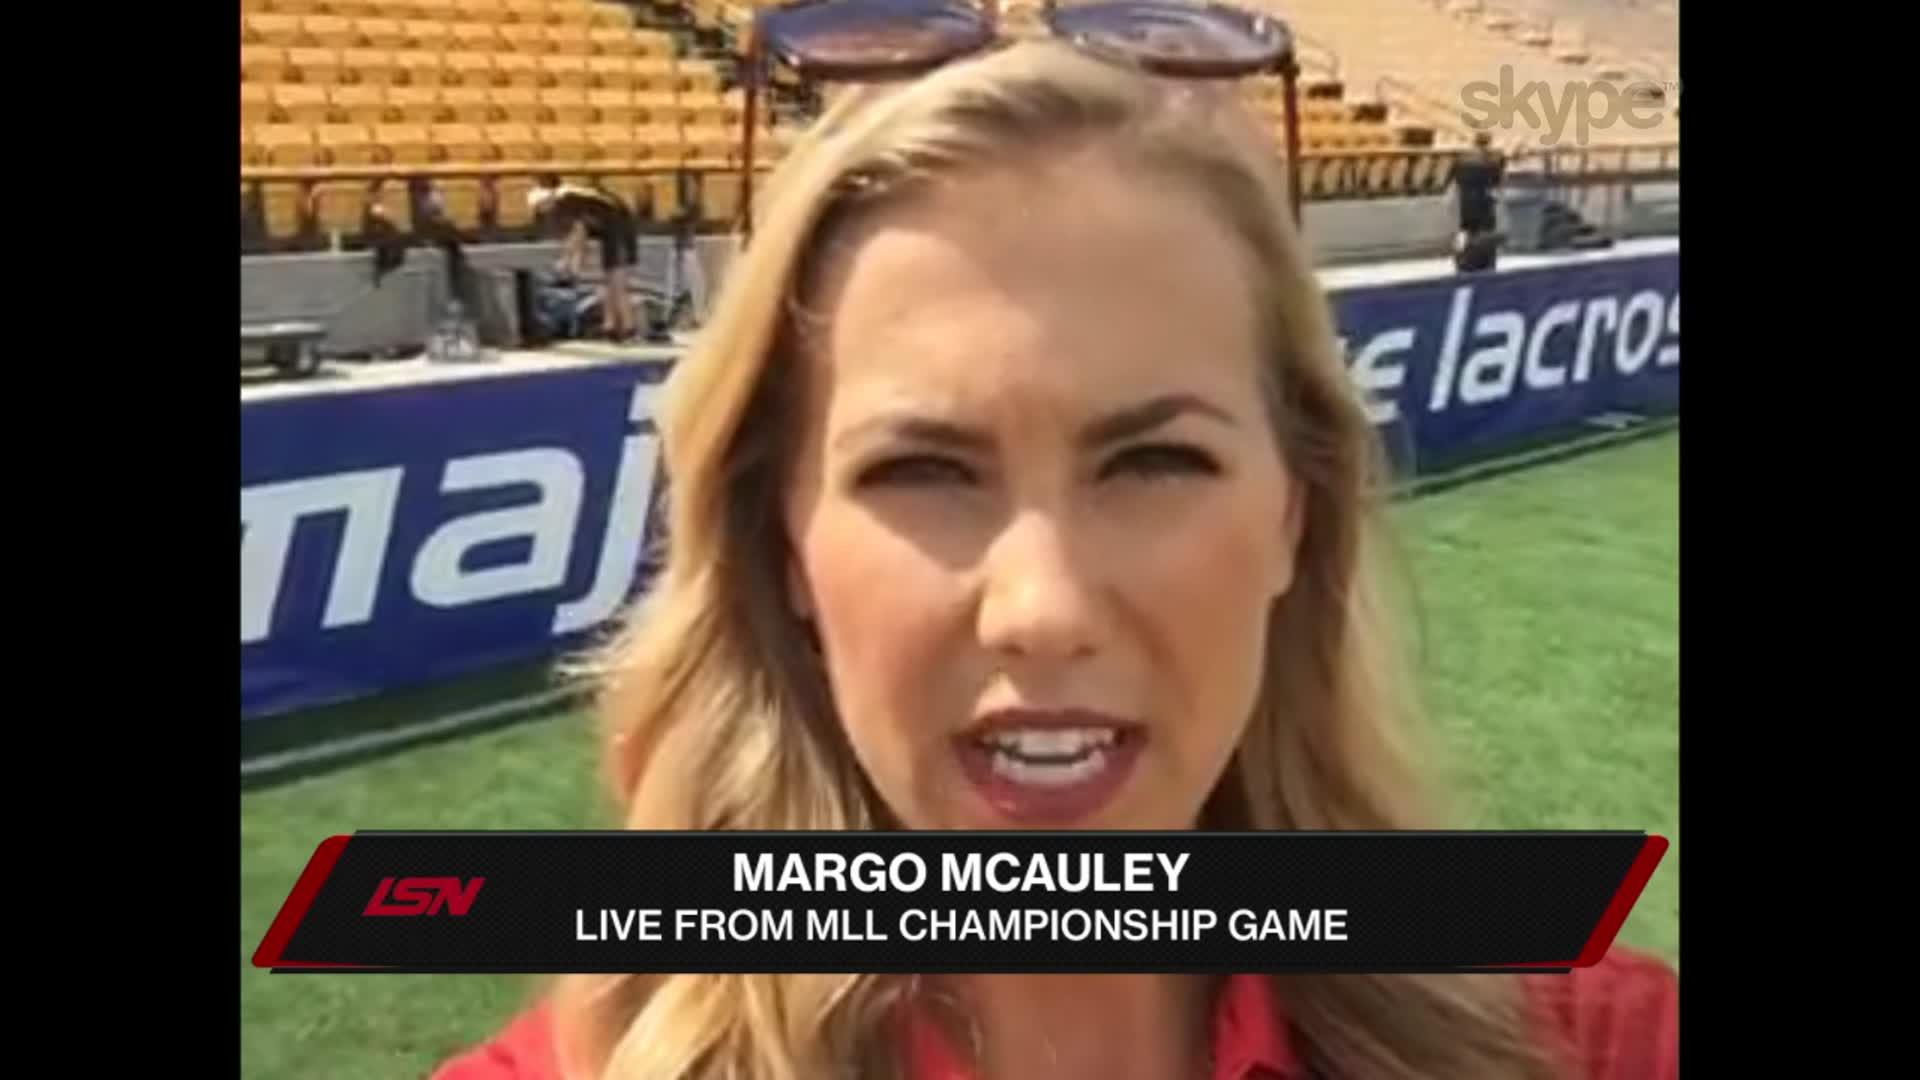 Player Pregame Prep in Georgia with Margo McAuley